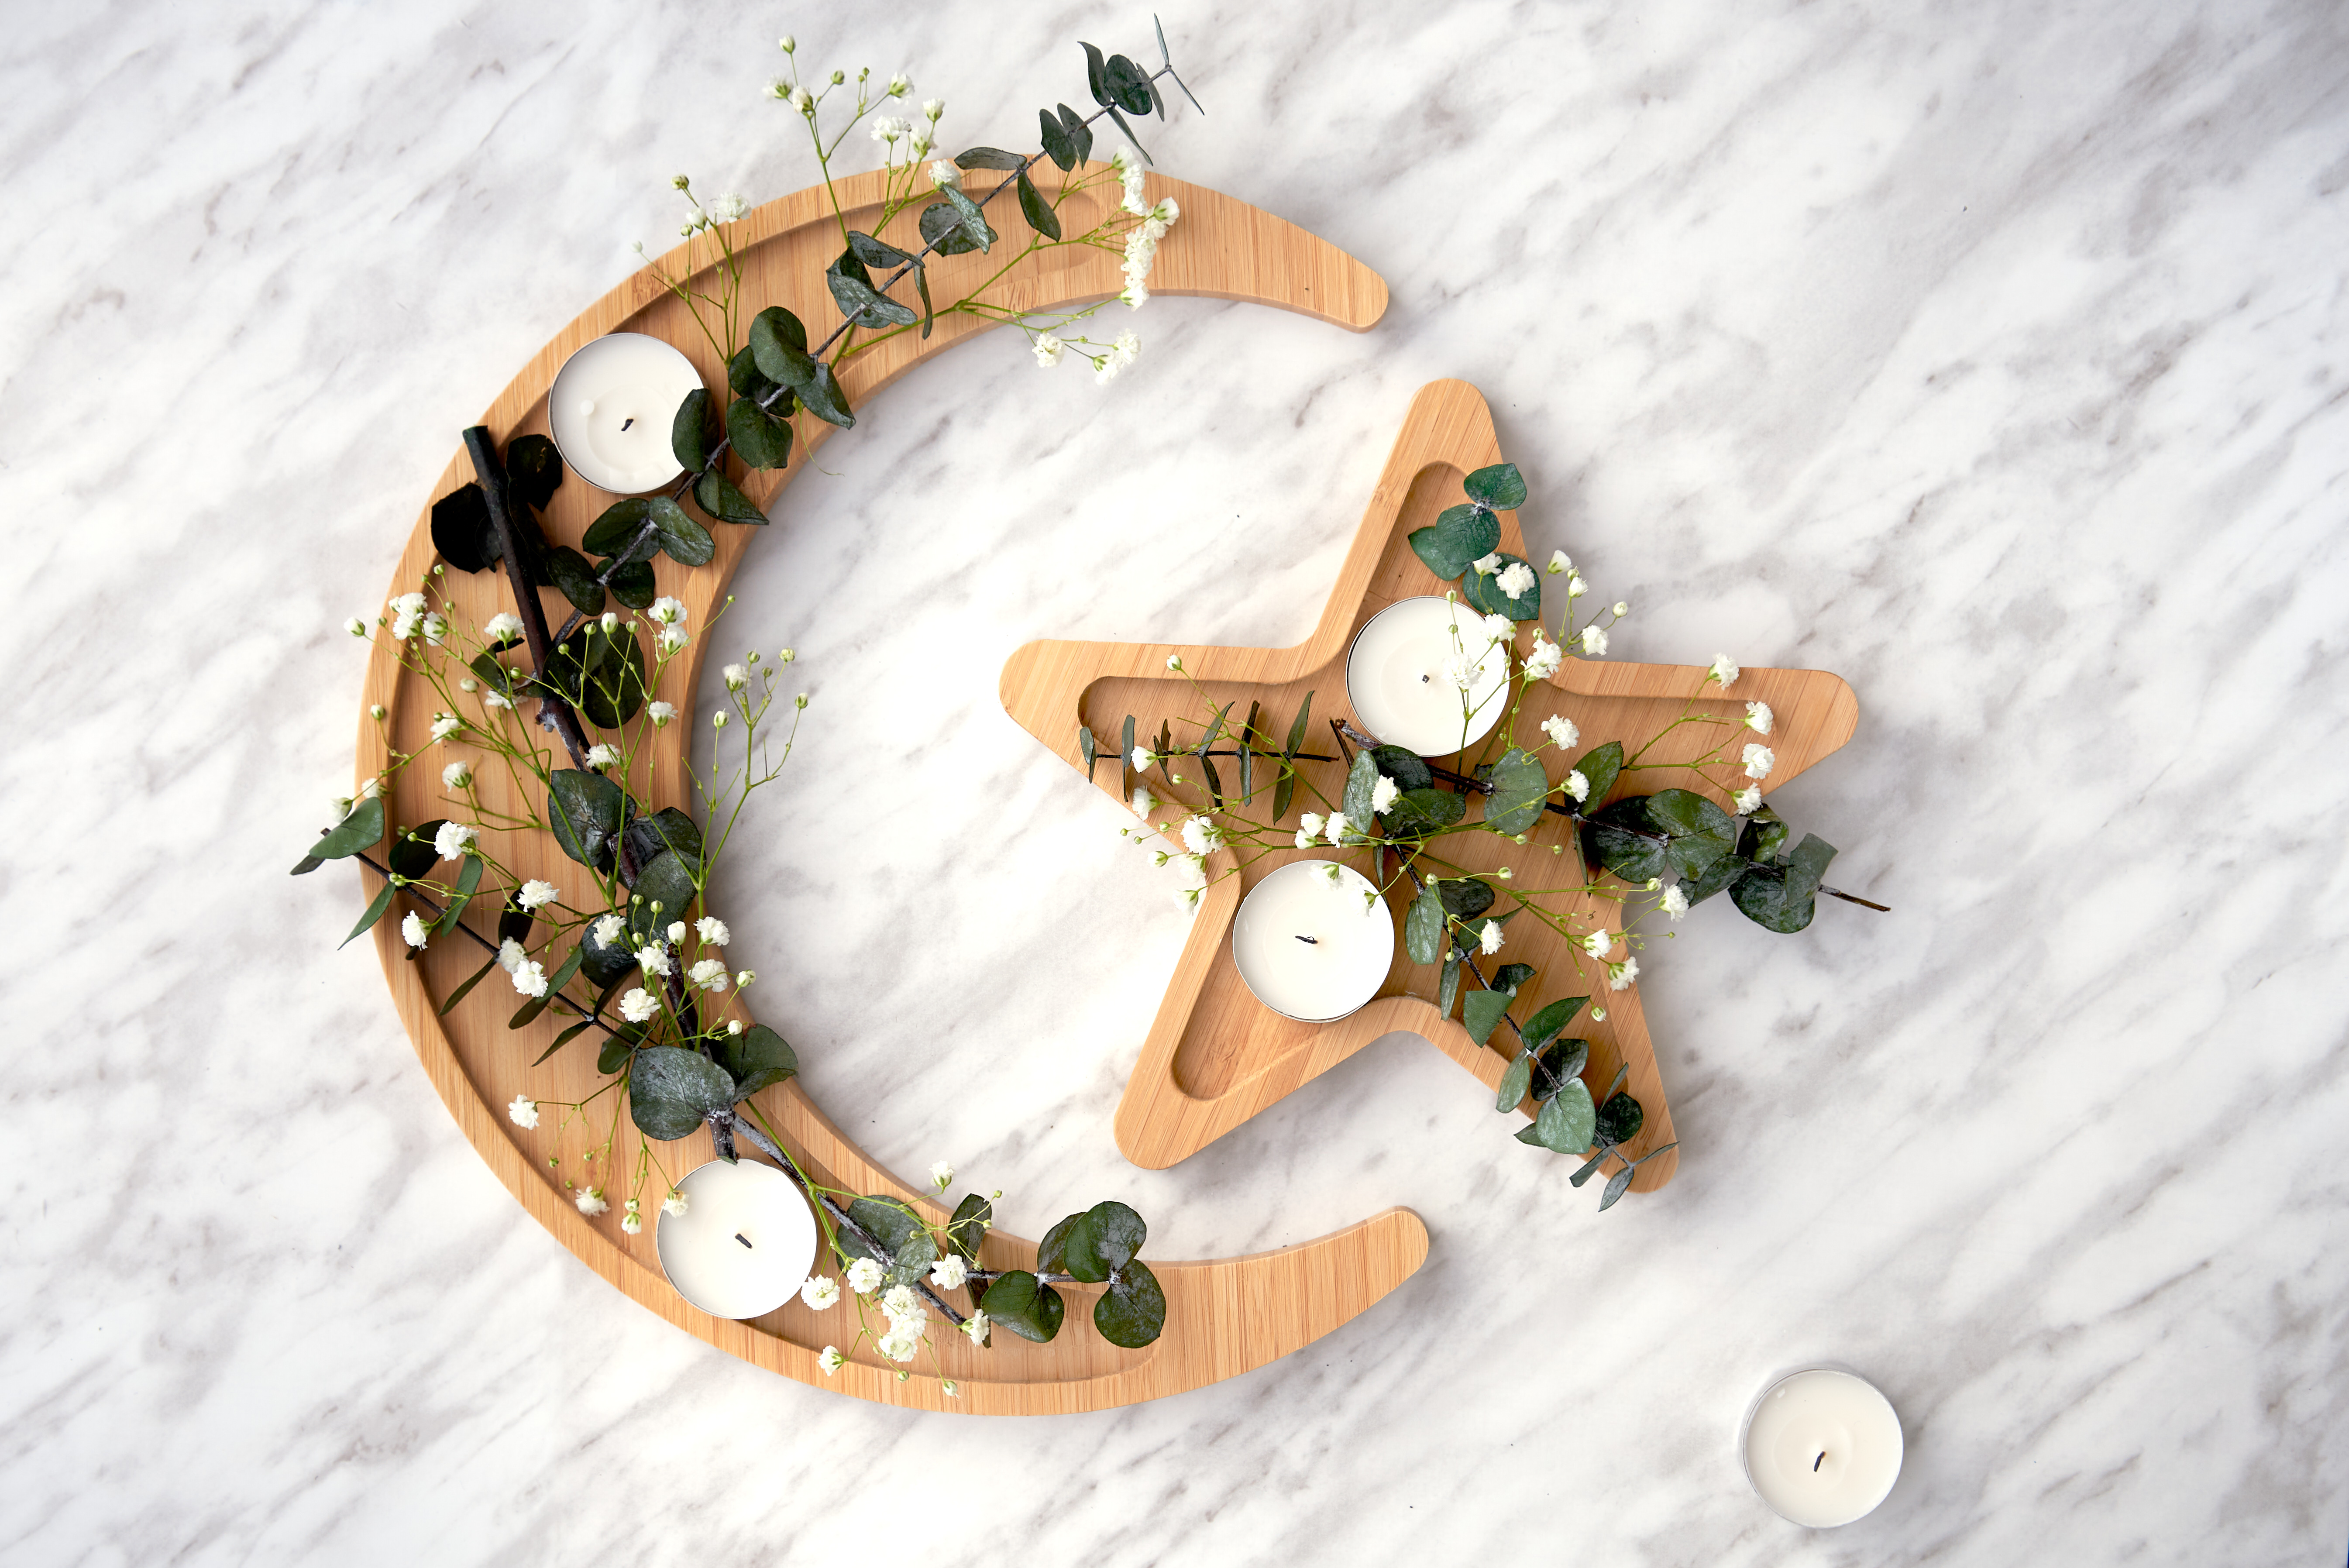 A moon and star bamboo wood platter with candles and green twigs rests on a white countertop